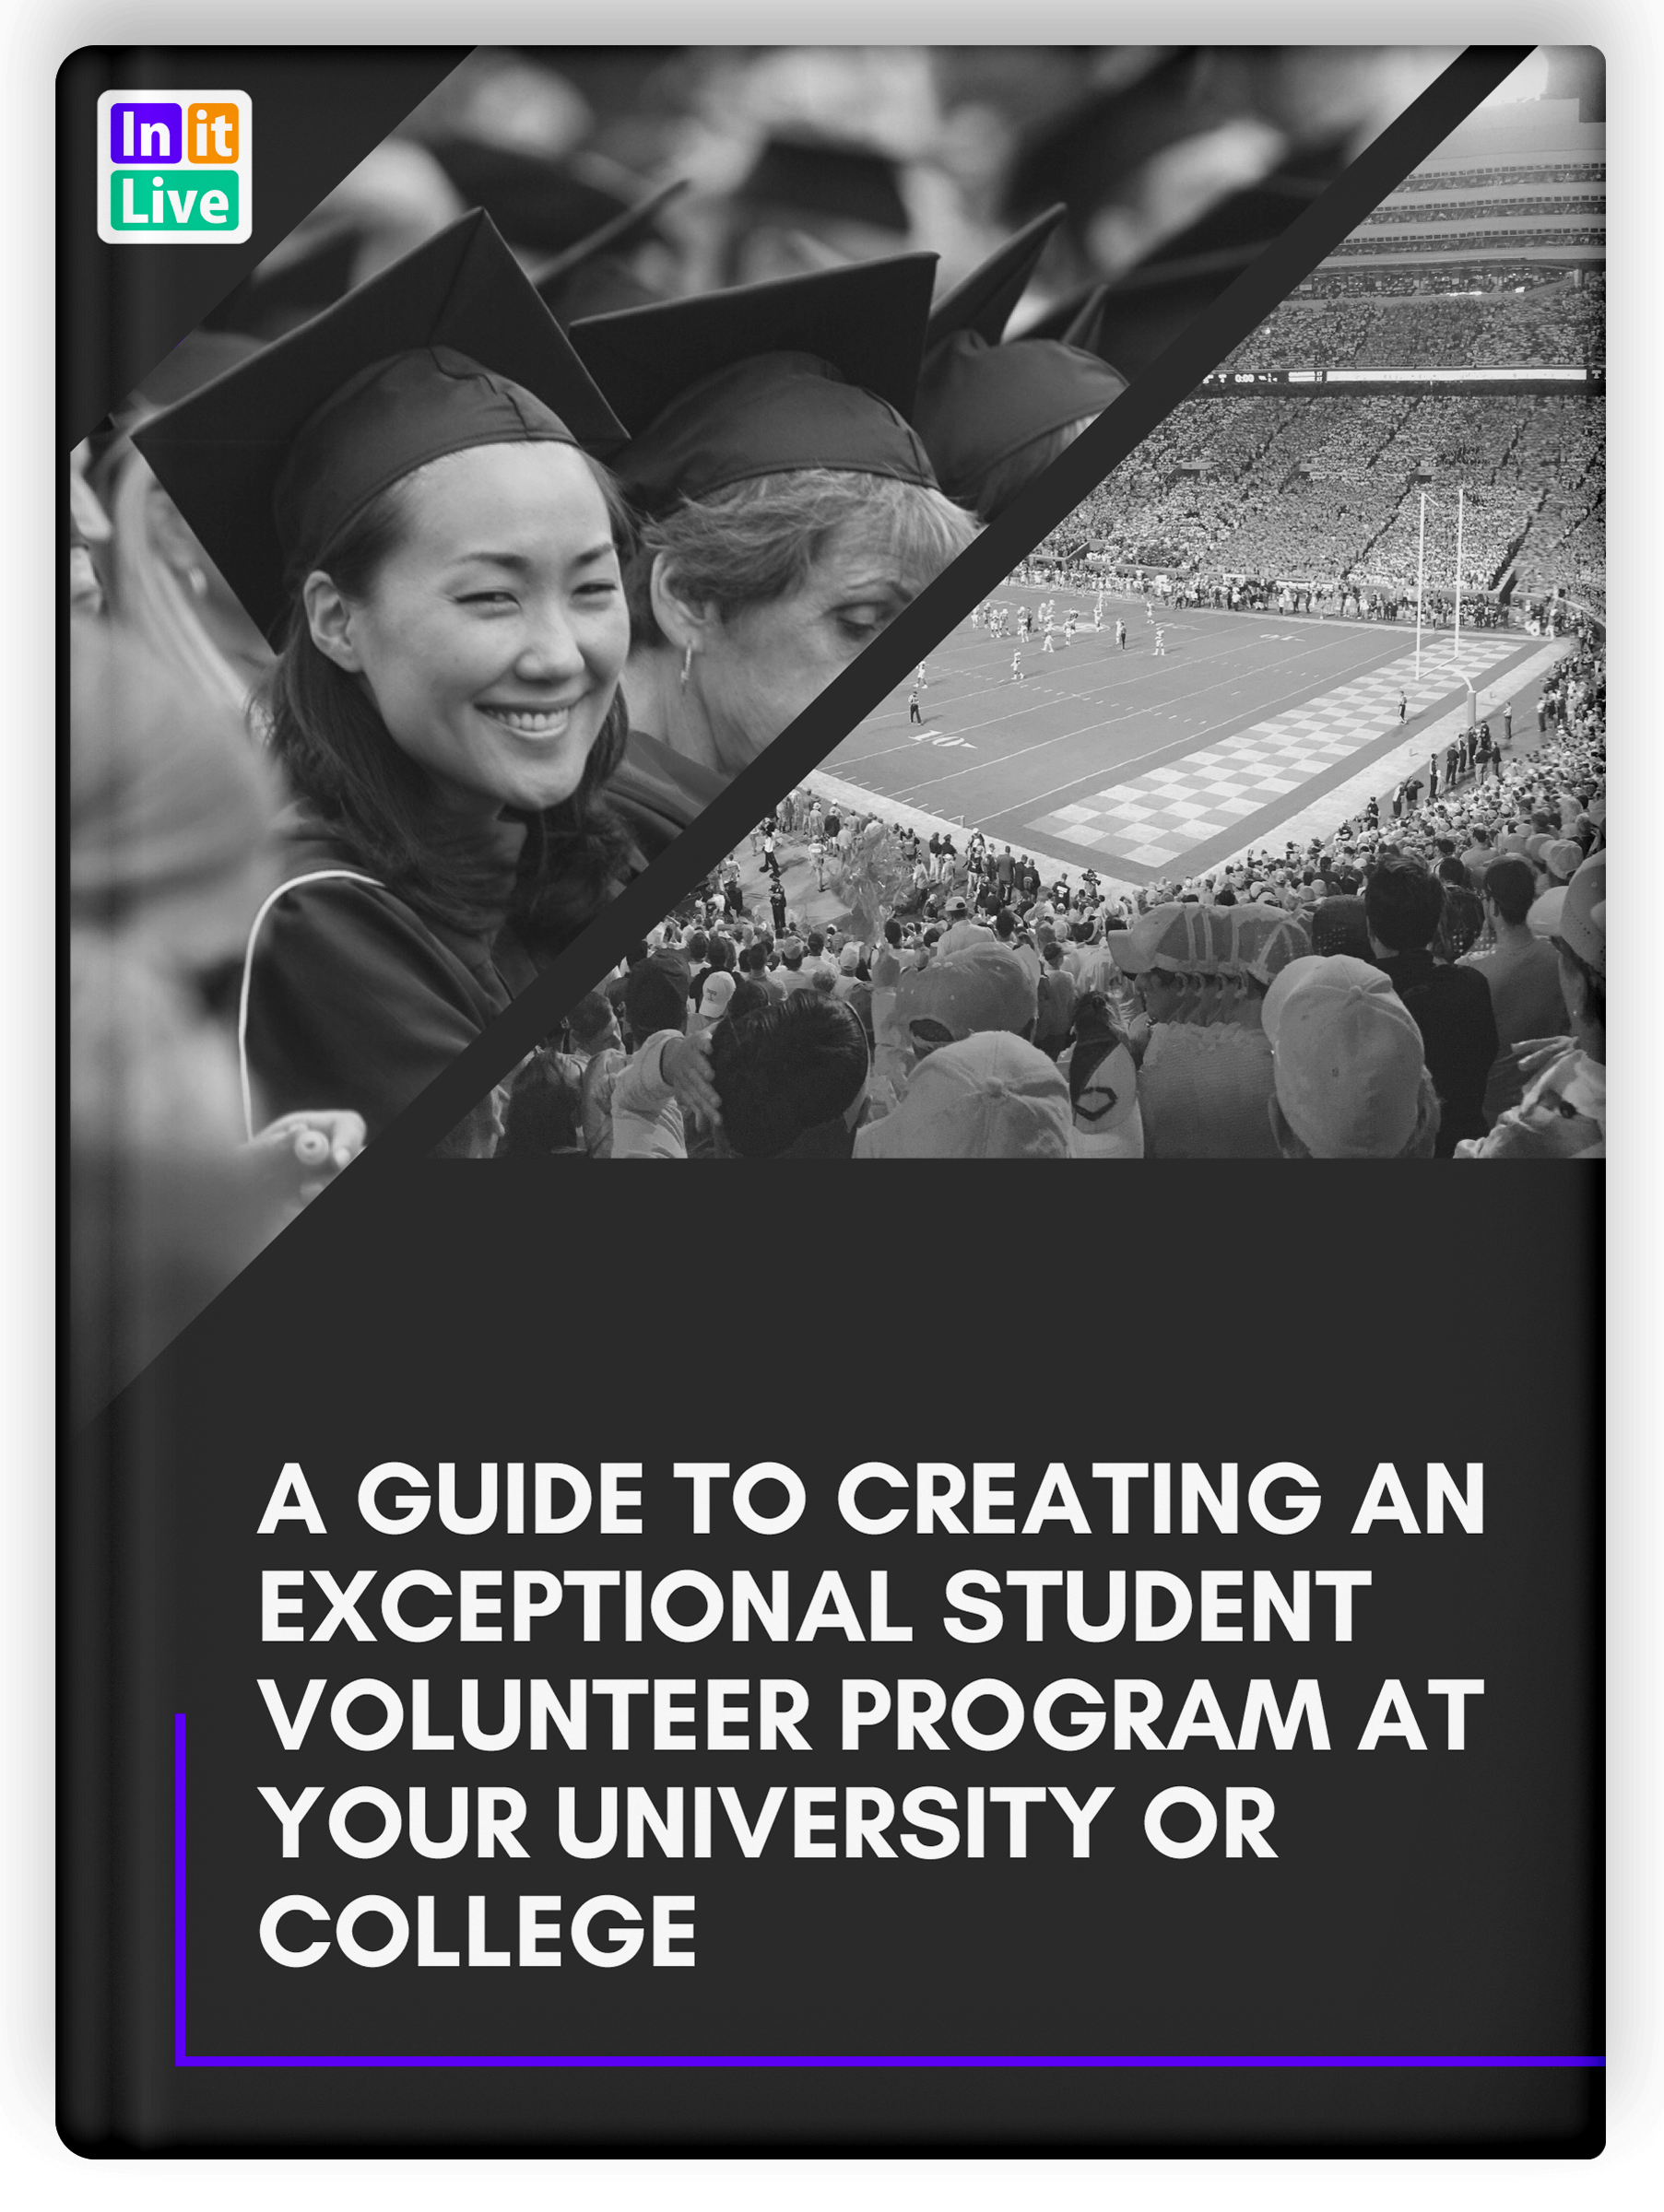 A Guide to Creating an Exceptional Student Volunteer Program At Your University or College